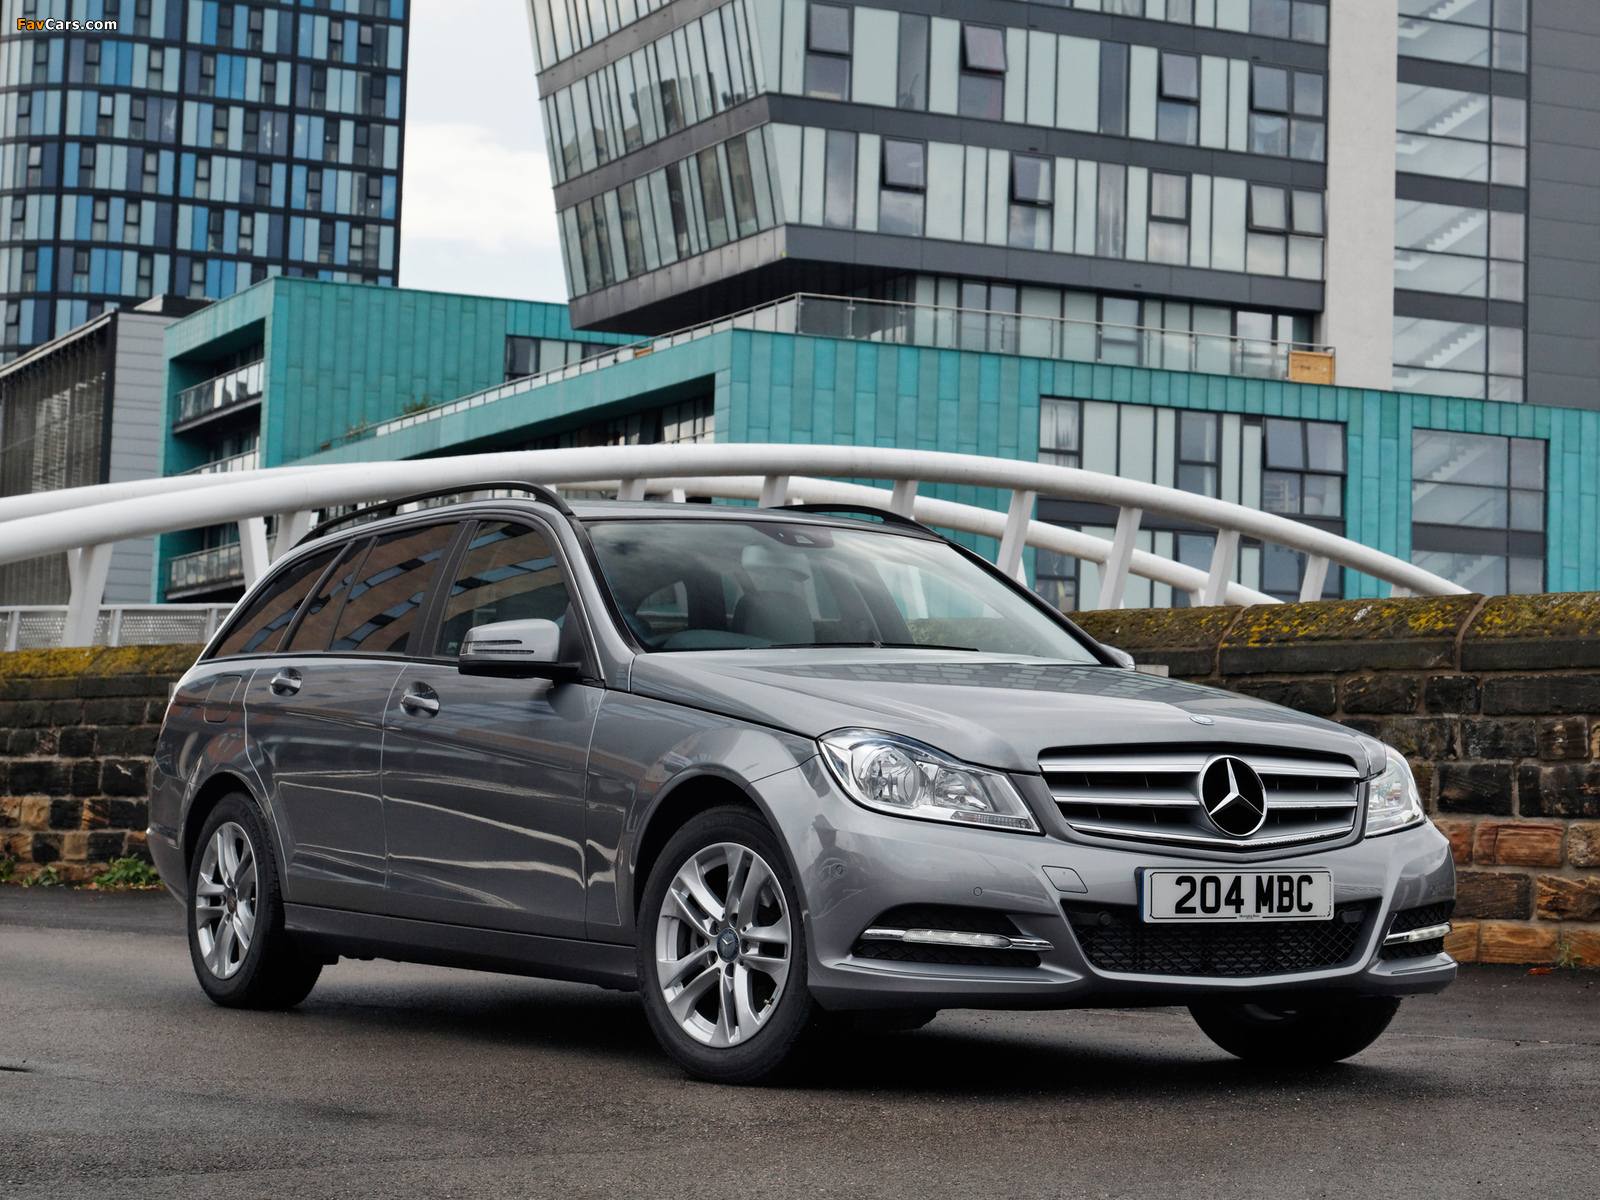 Mercedes-Benz C 220 CDI Estate UK-spec (S204) 2011 wallpapers (1600 x 1200)